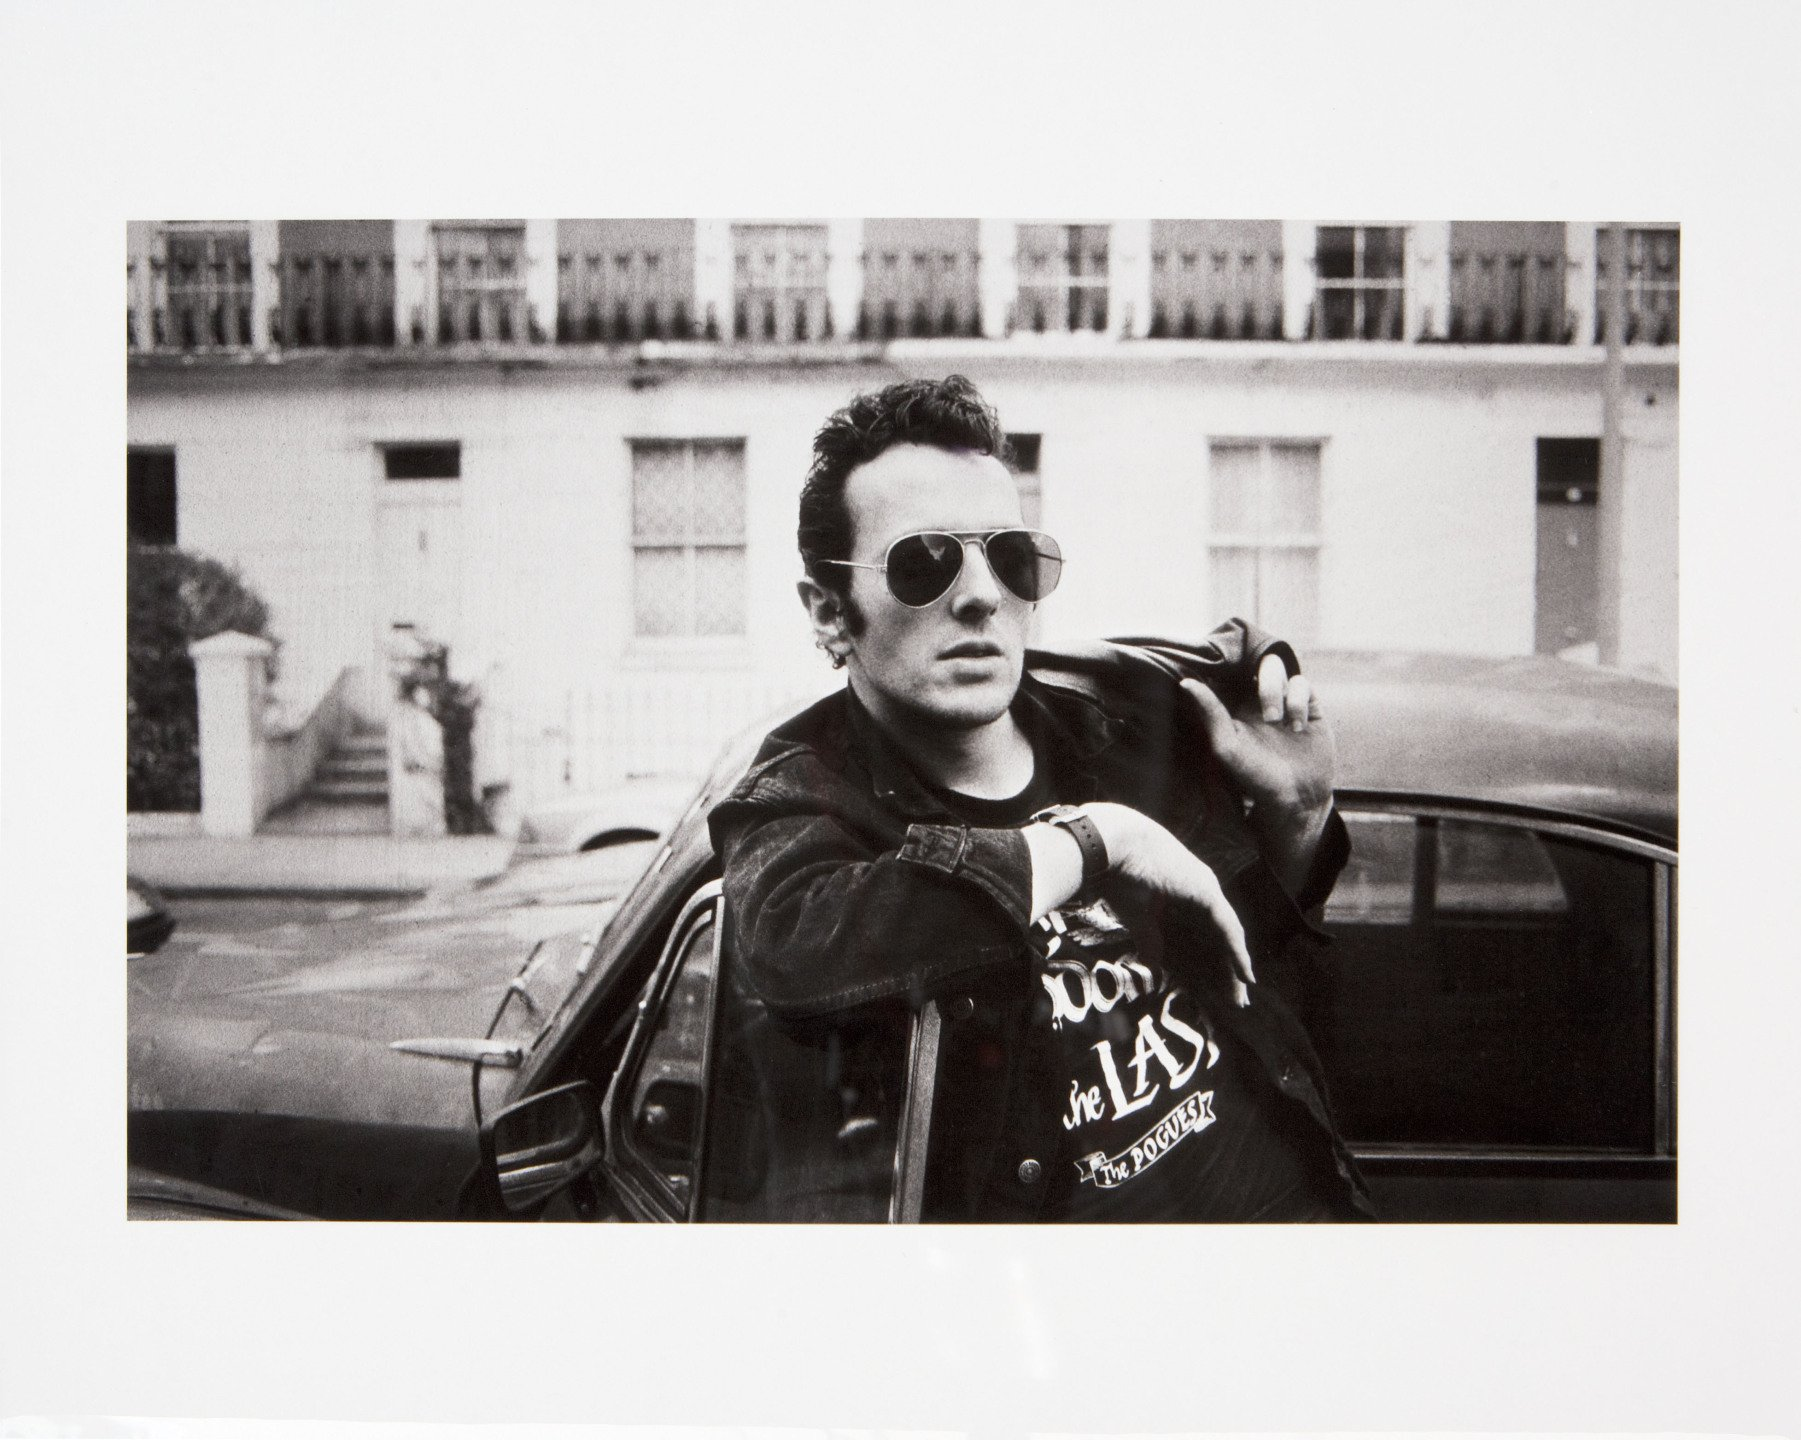 Josh Cheuse, Joe Strummer, London 1985